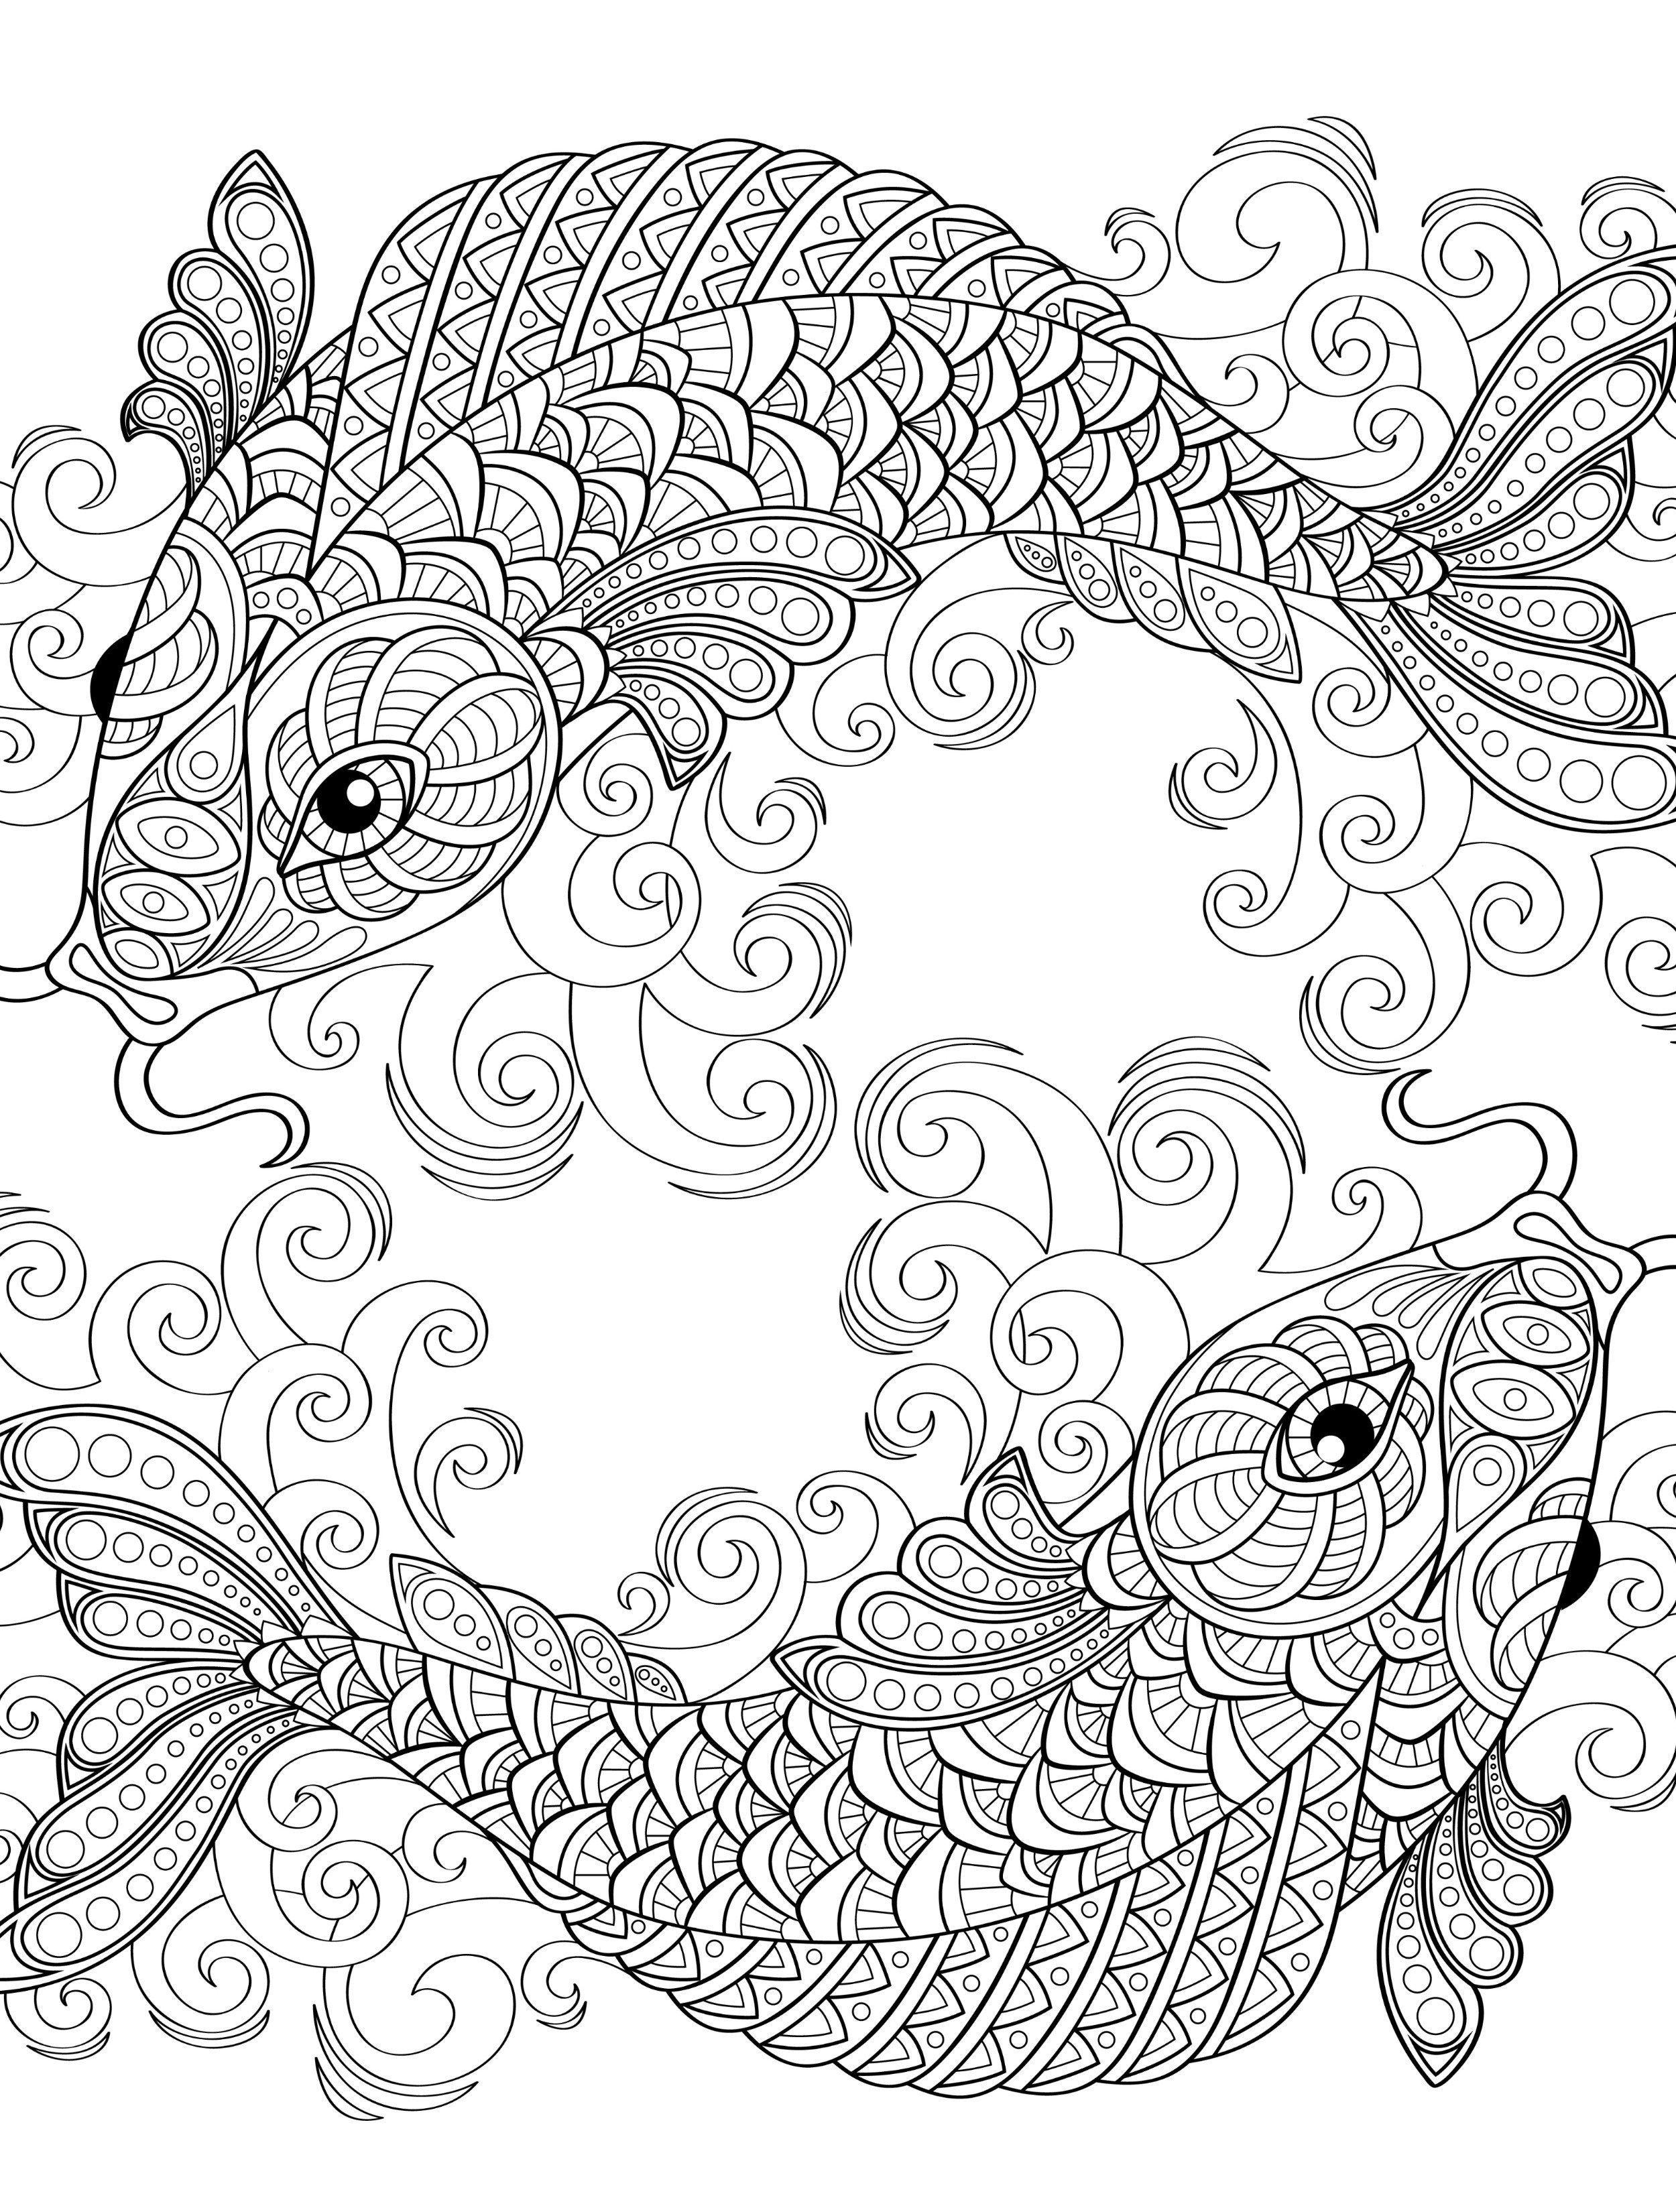 coloring book pages for adults yin and yang pieces symbol fish coloring page for adults  coloring book pages for adults